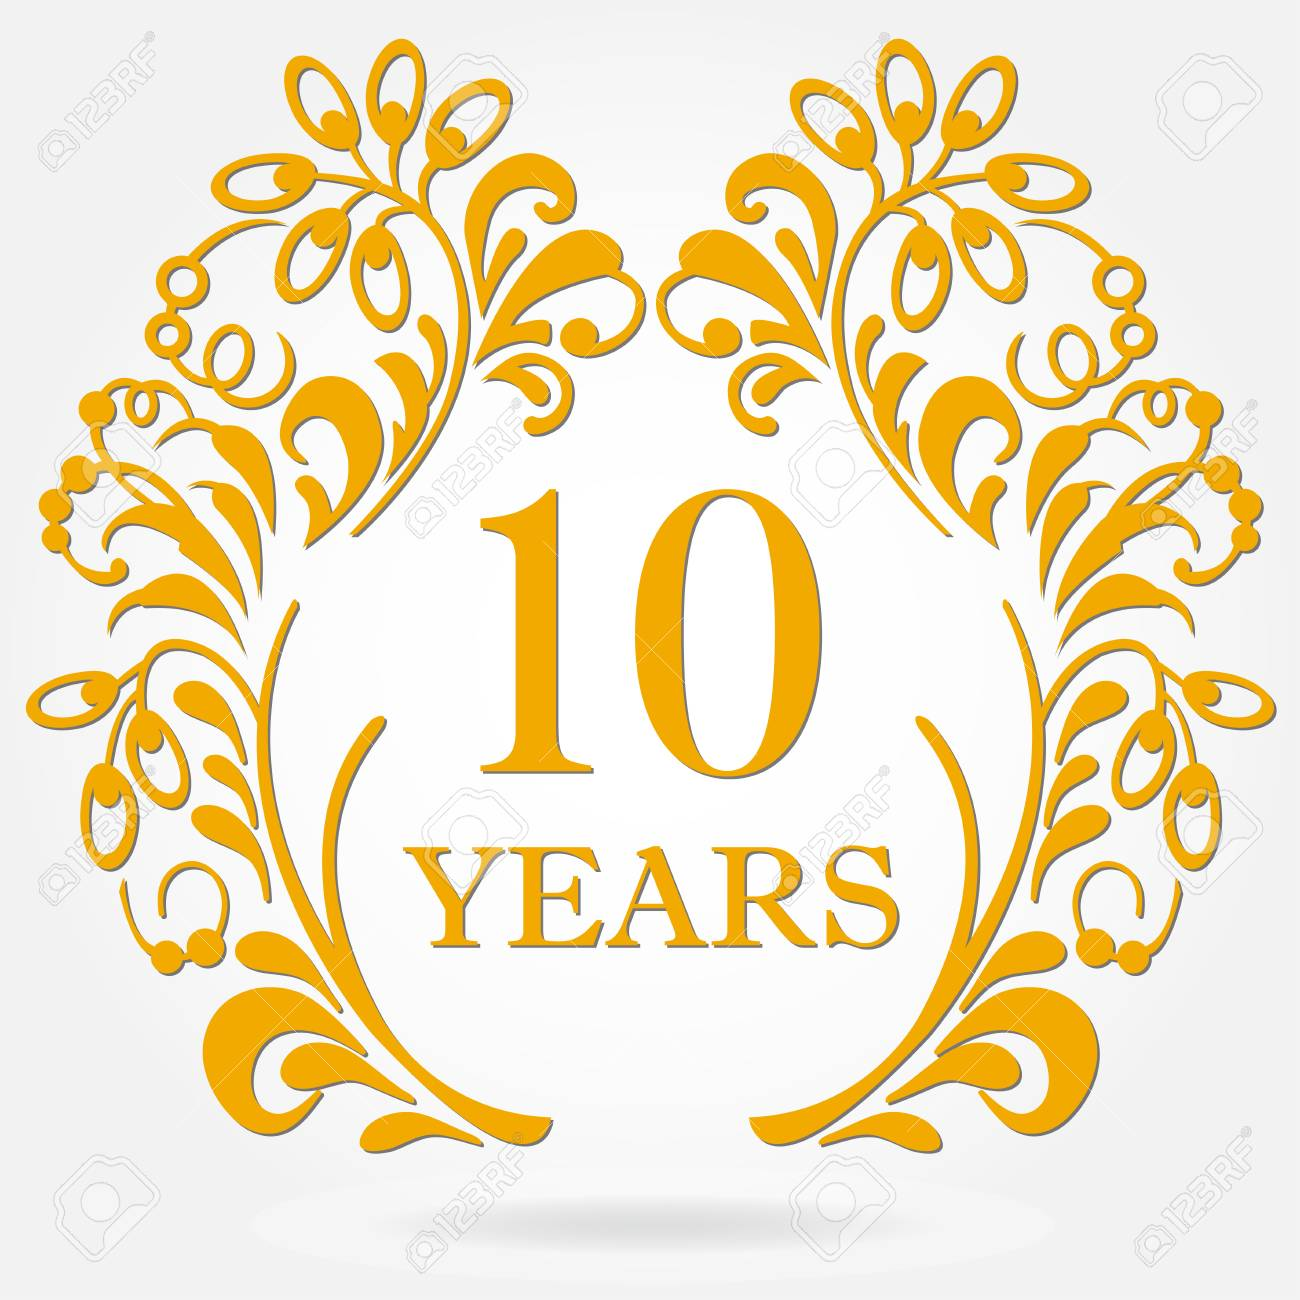 10 Years Anniversary Icon In Ornate Frame With Floral Elements Royalty Free Cliparts Vectors And Stock Illustration Image 96758203